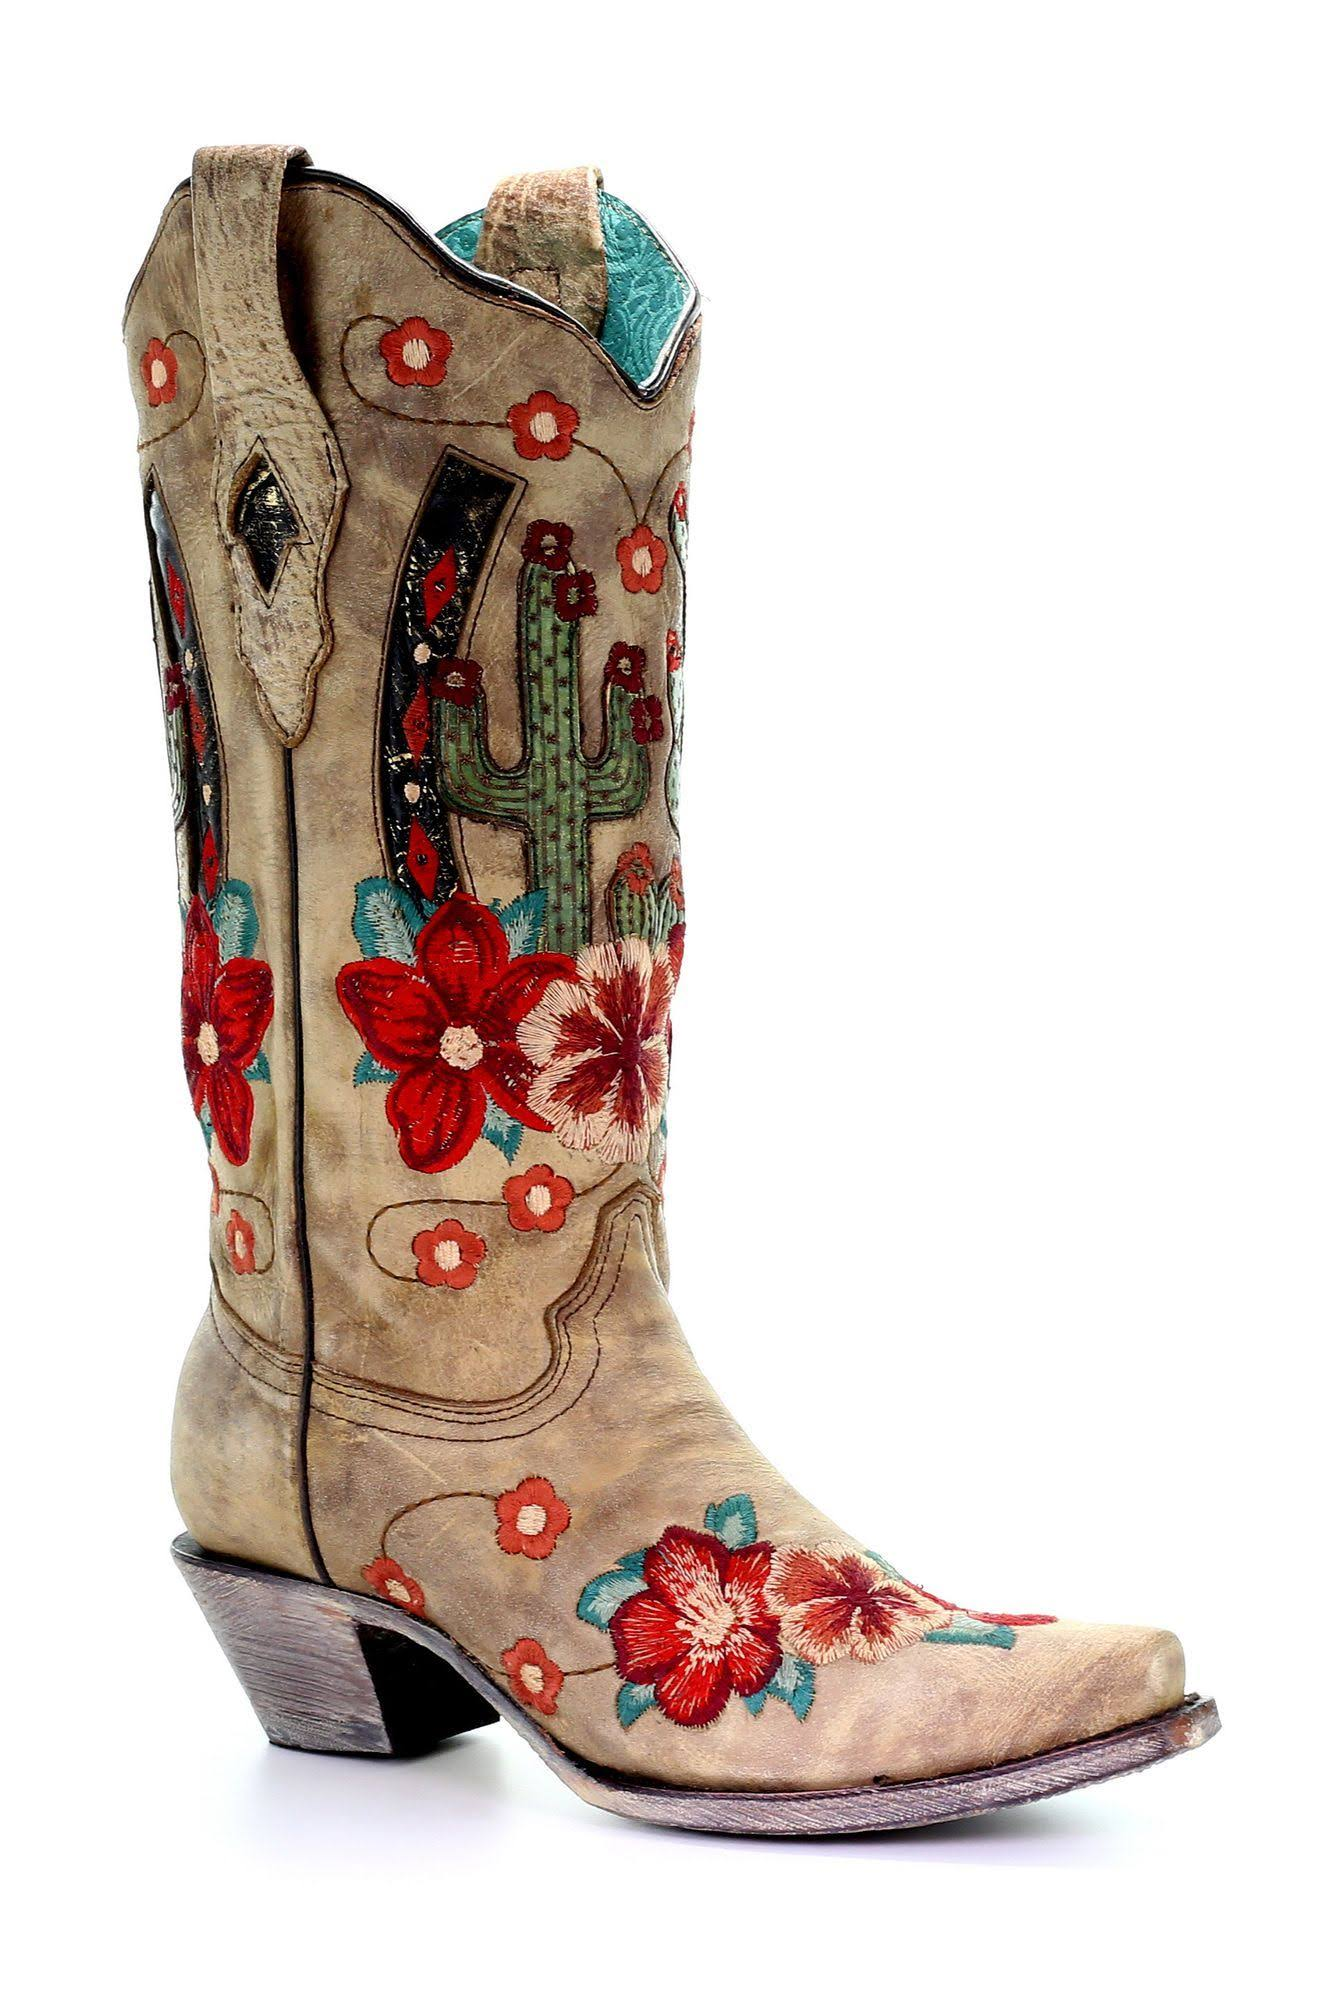 Corral Women's Cactus Inlay Western Boots - Snip Toe